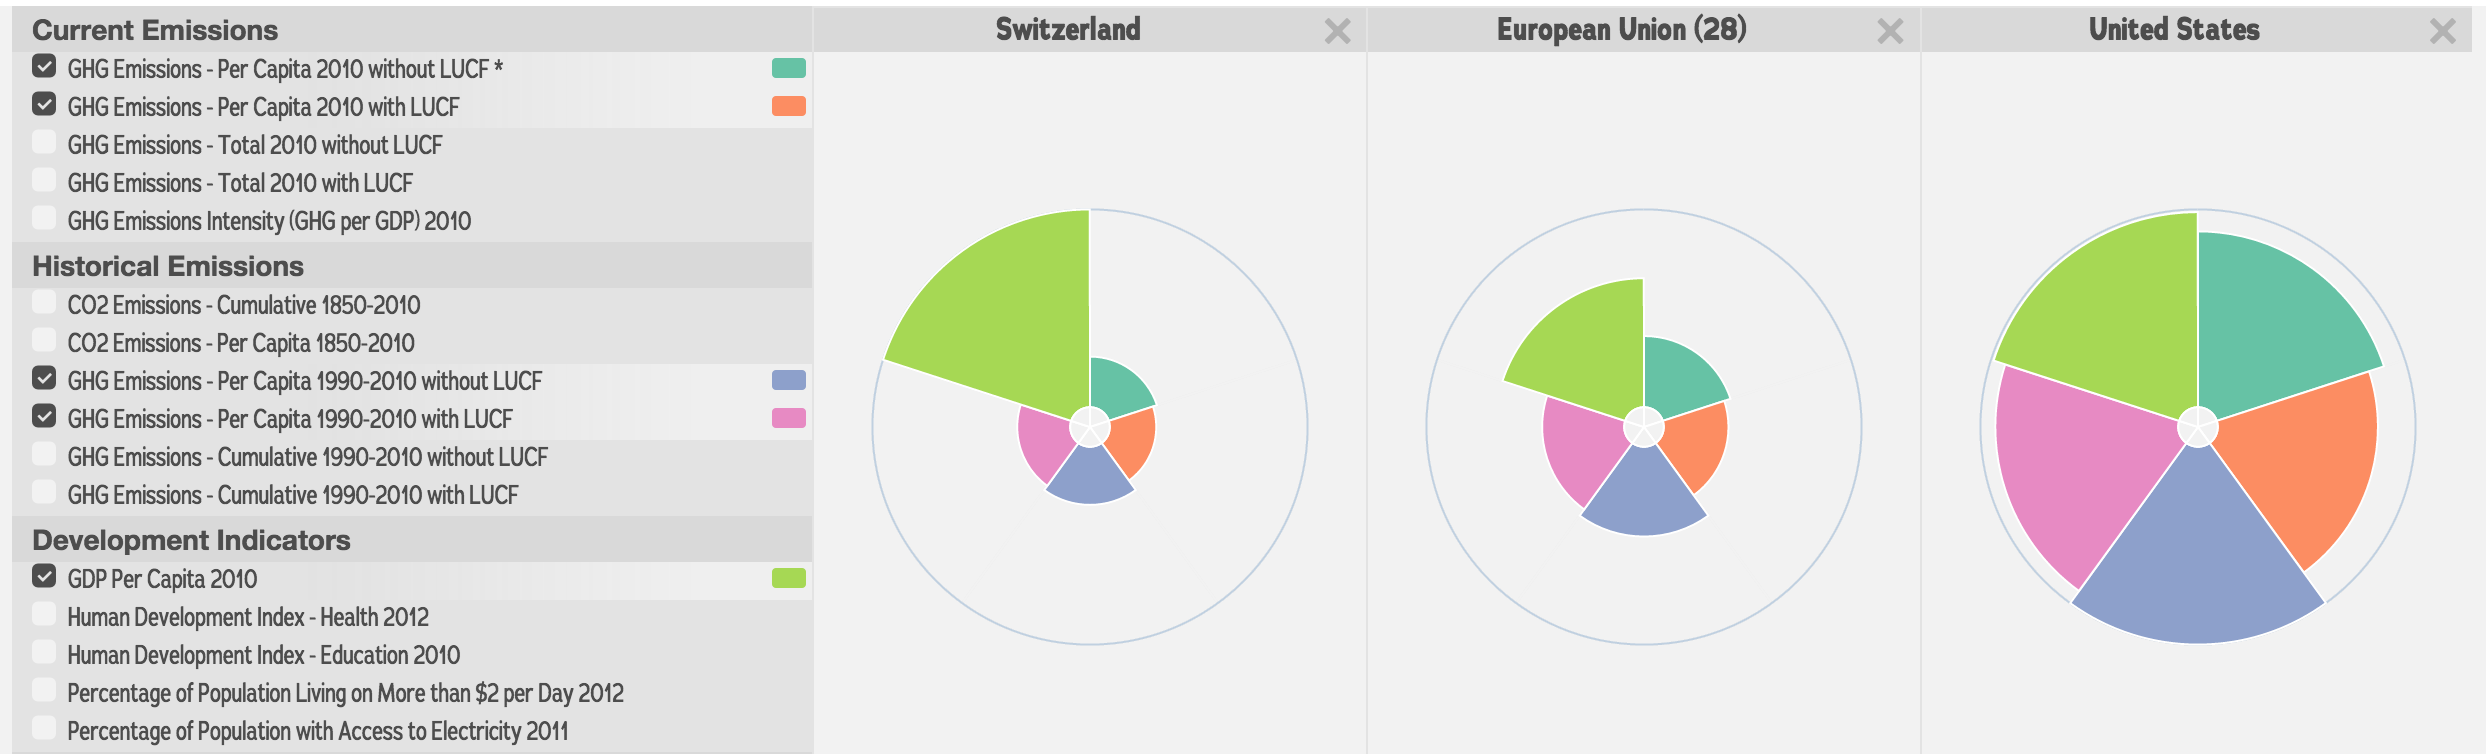 <p>WRI's CAIT Equity Explorer enables users to compare different countries based on a range of indicators – balancing emissions against capability and mitigation potential. Although Switzerland's per capita CO2 emissions (including LULUCF) are 6.55tCO2 - lower than the EU at 9.3tCO2 or the US at 20.22tCO2 it has one of the world's highest GDP per capita at USD 84,518 in 2013.</p>